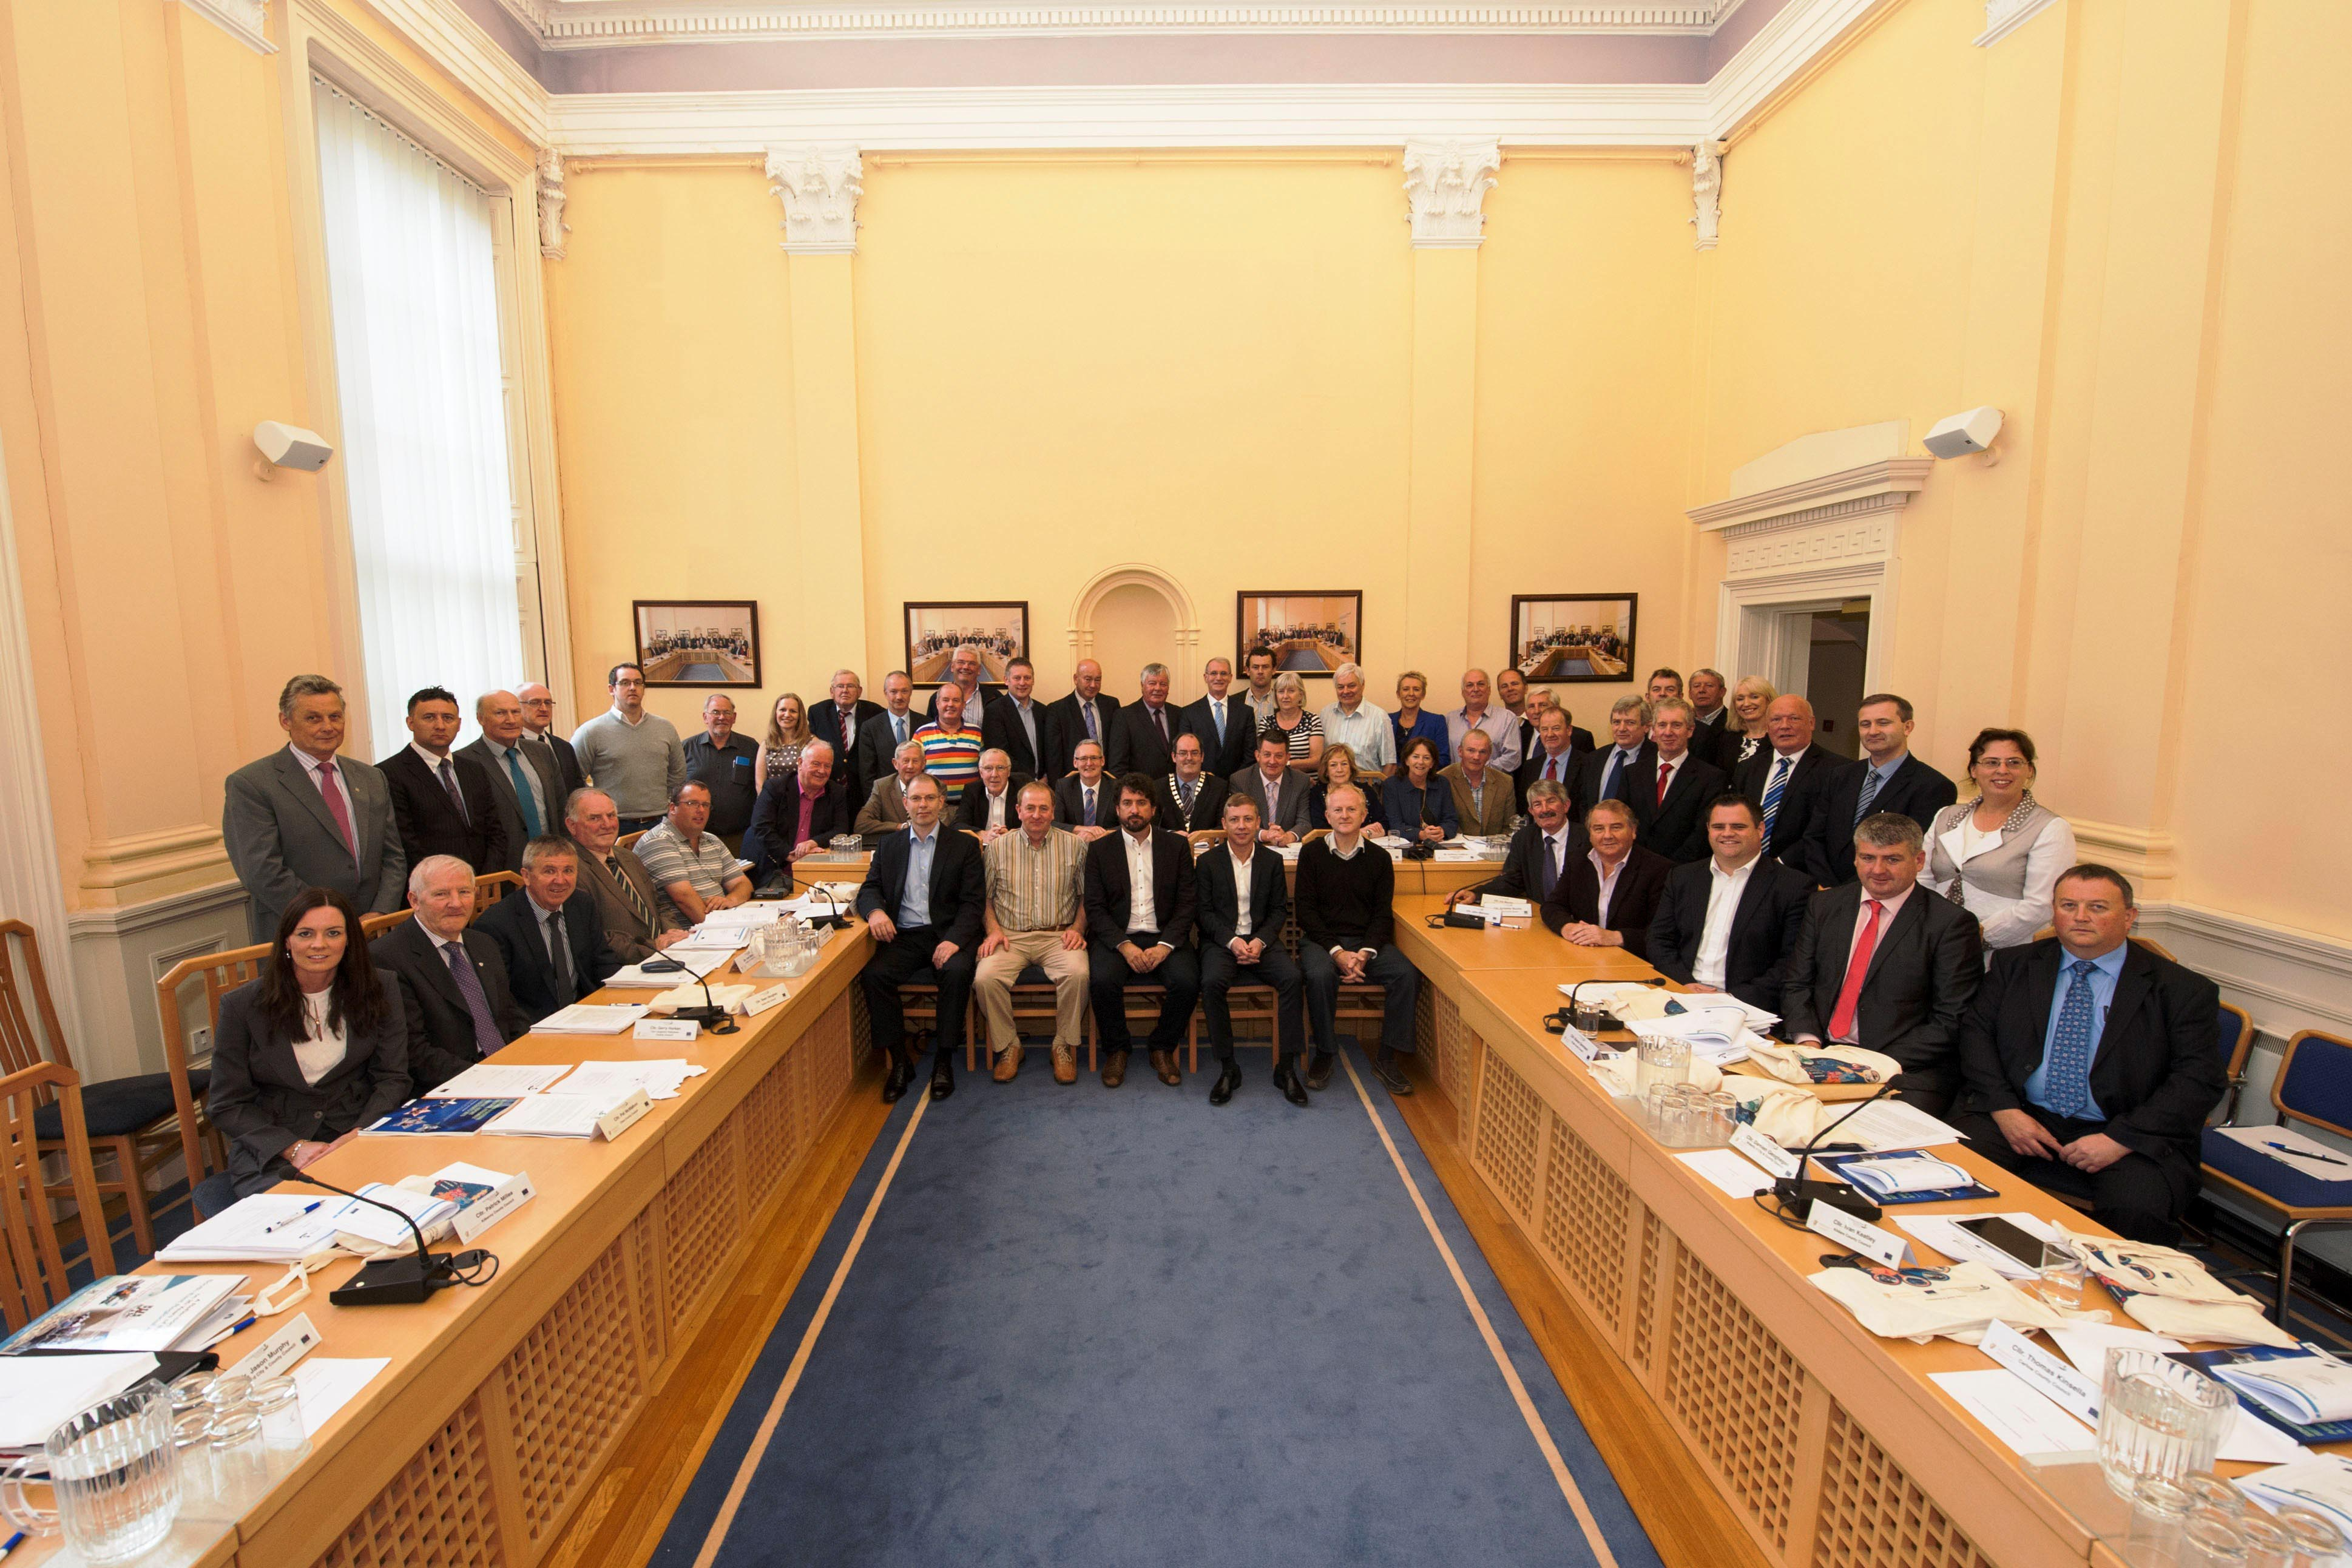 Members and staff of the S&E Regional Assembly, Assembly House, Waterford. AGM, 4th July 2014